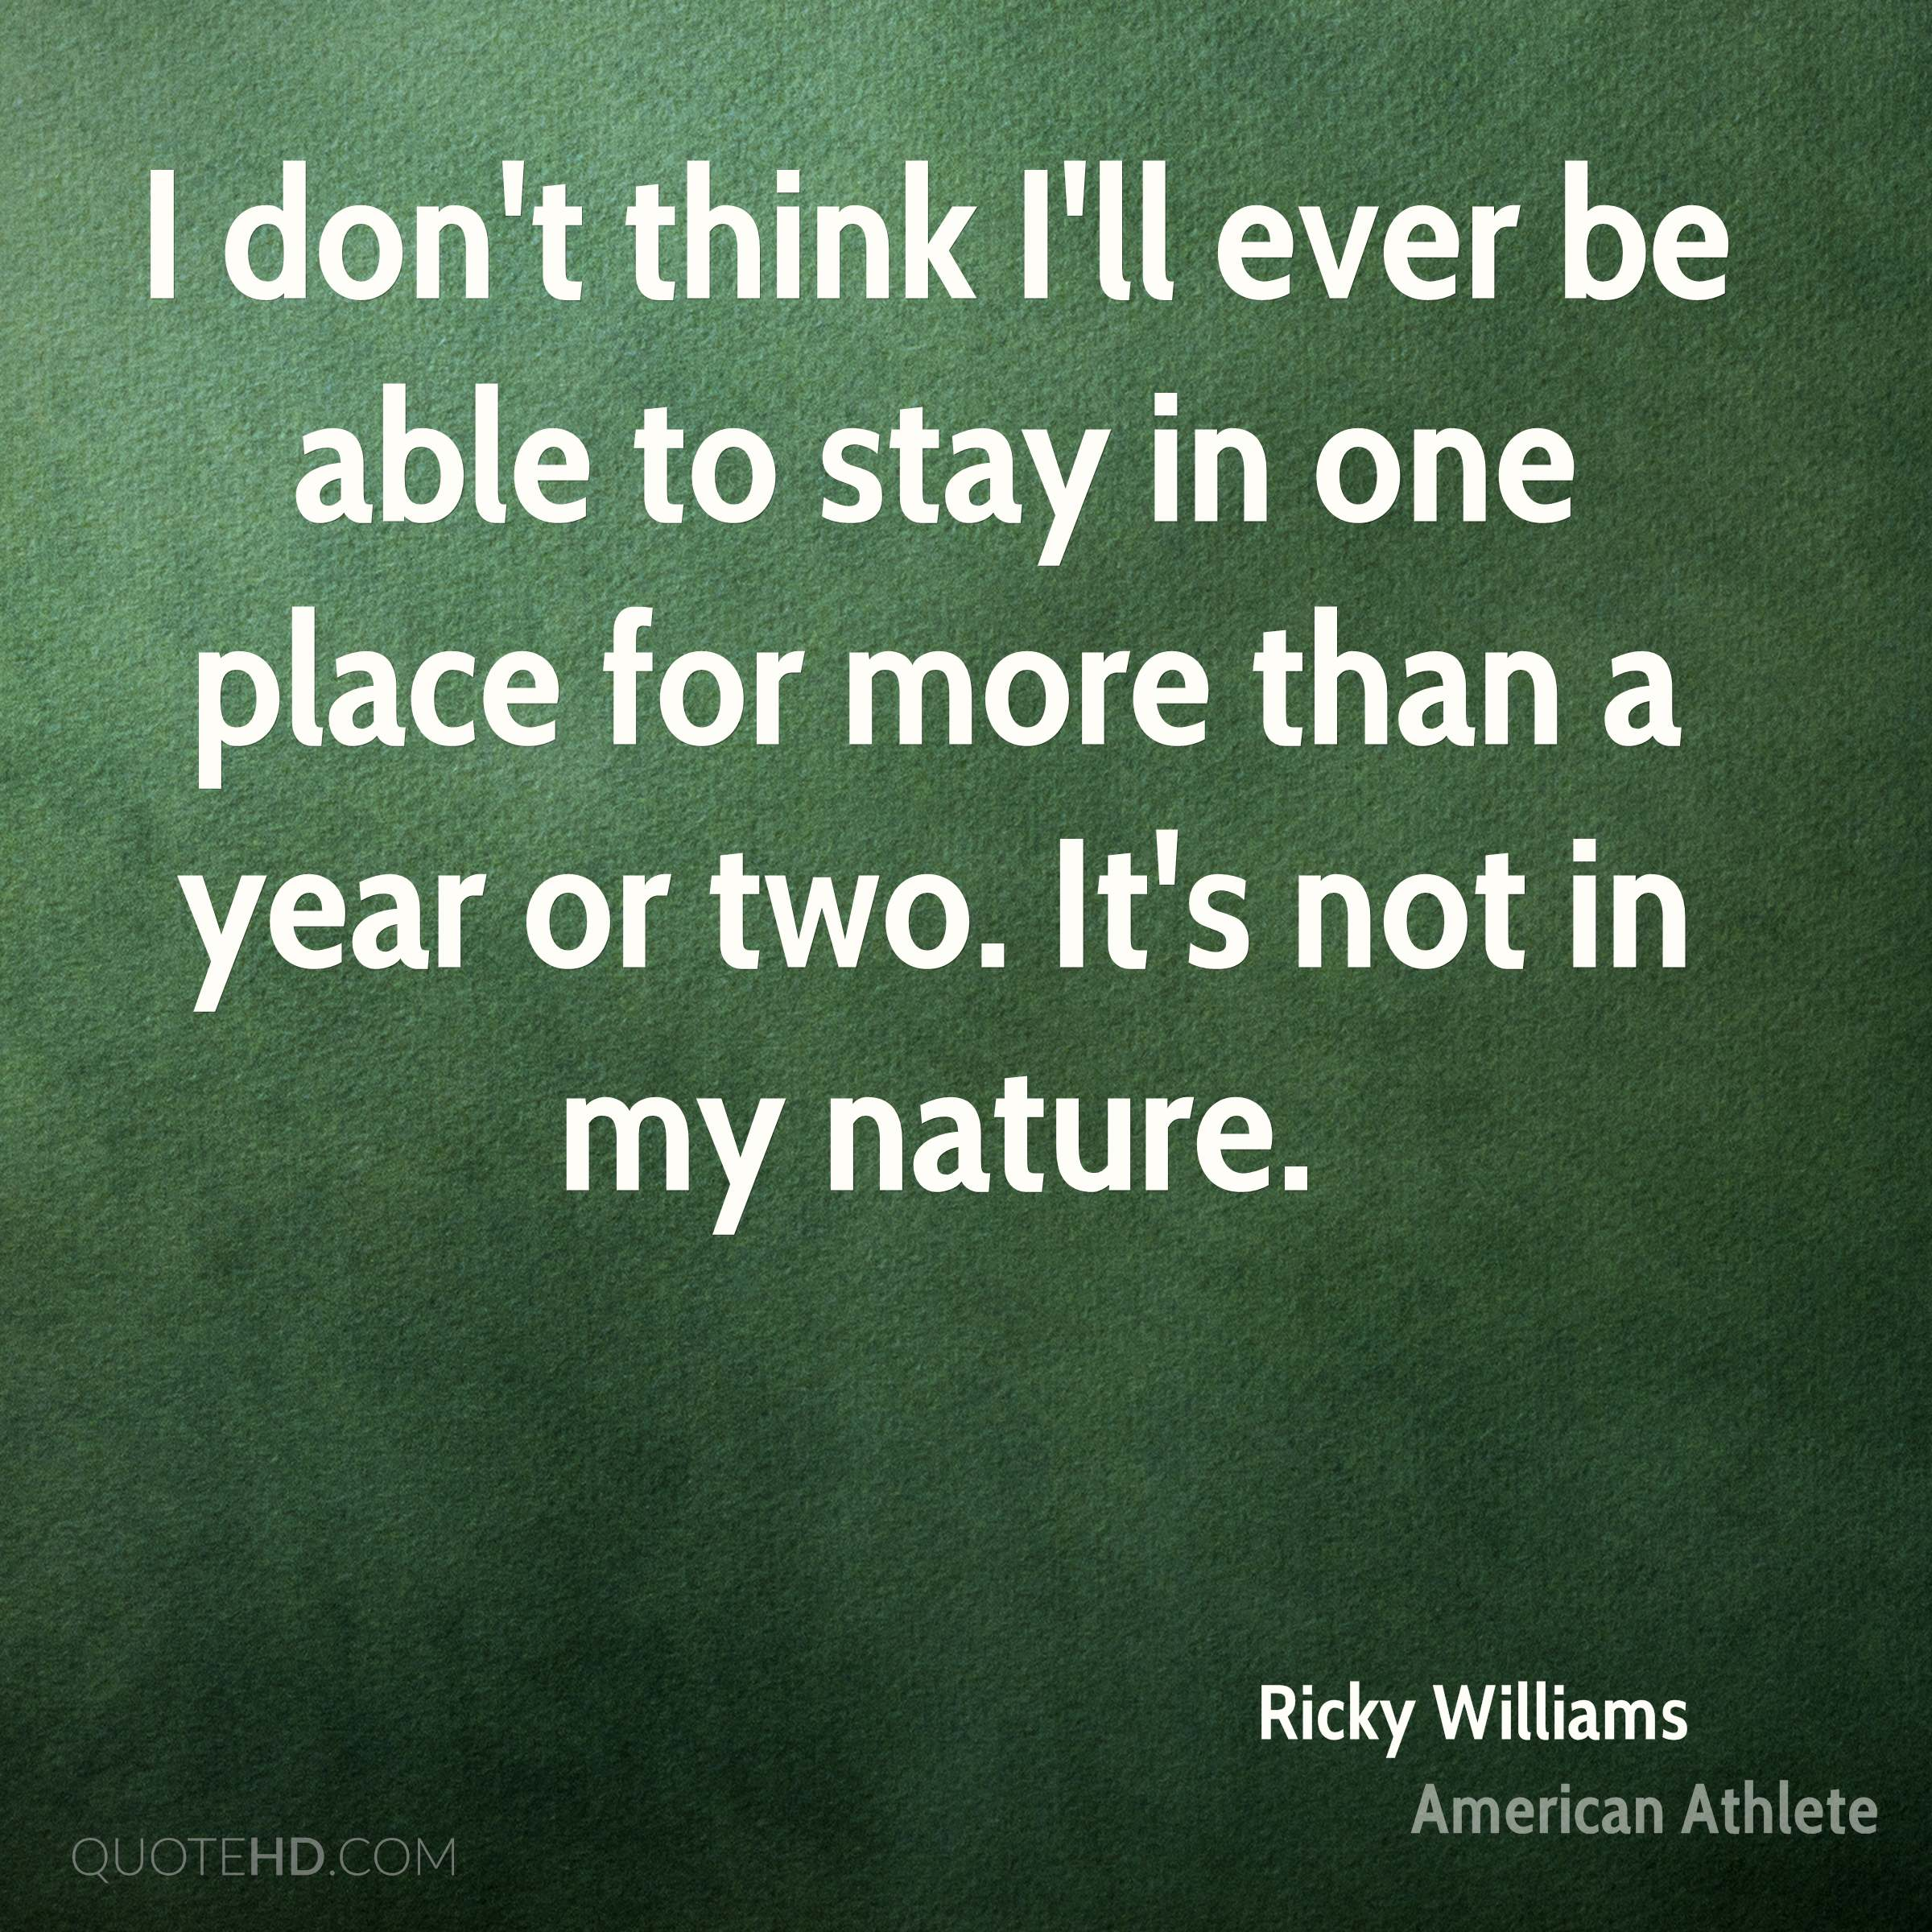 photograph relating to My Life All in One Place named Ricky Williams Character Offers QuoteHD